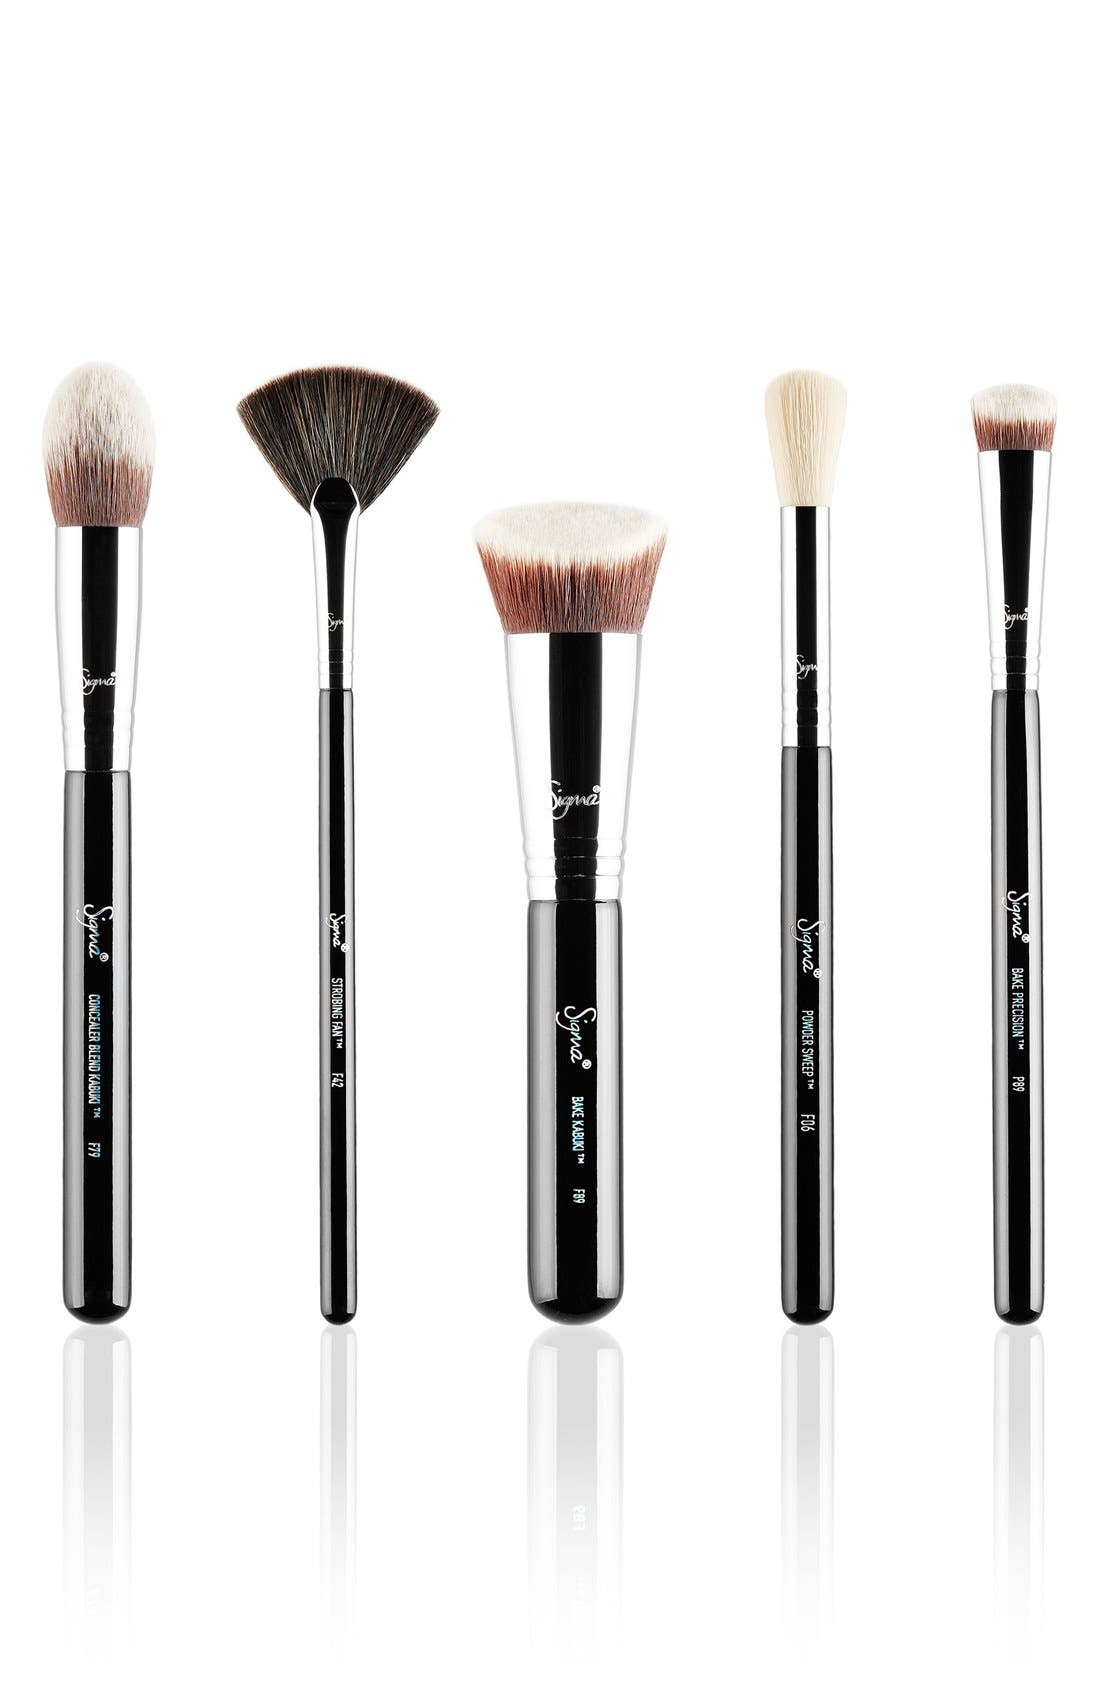 Sigma Beauty 'Baking & Strobing' Brush Set ($106 Value)